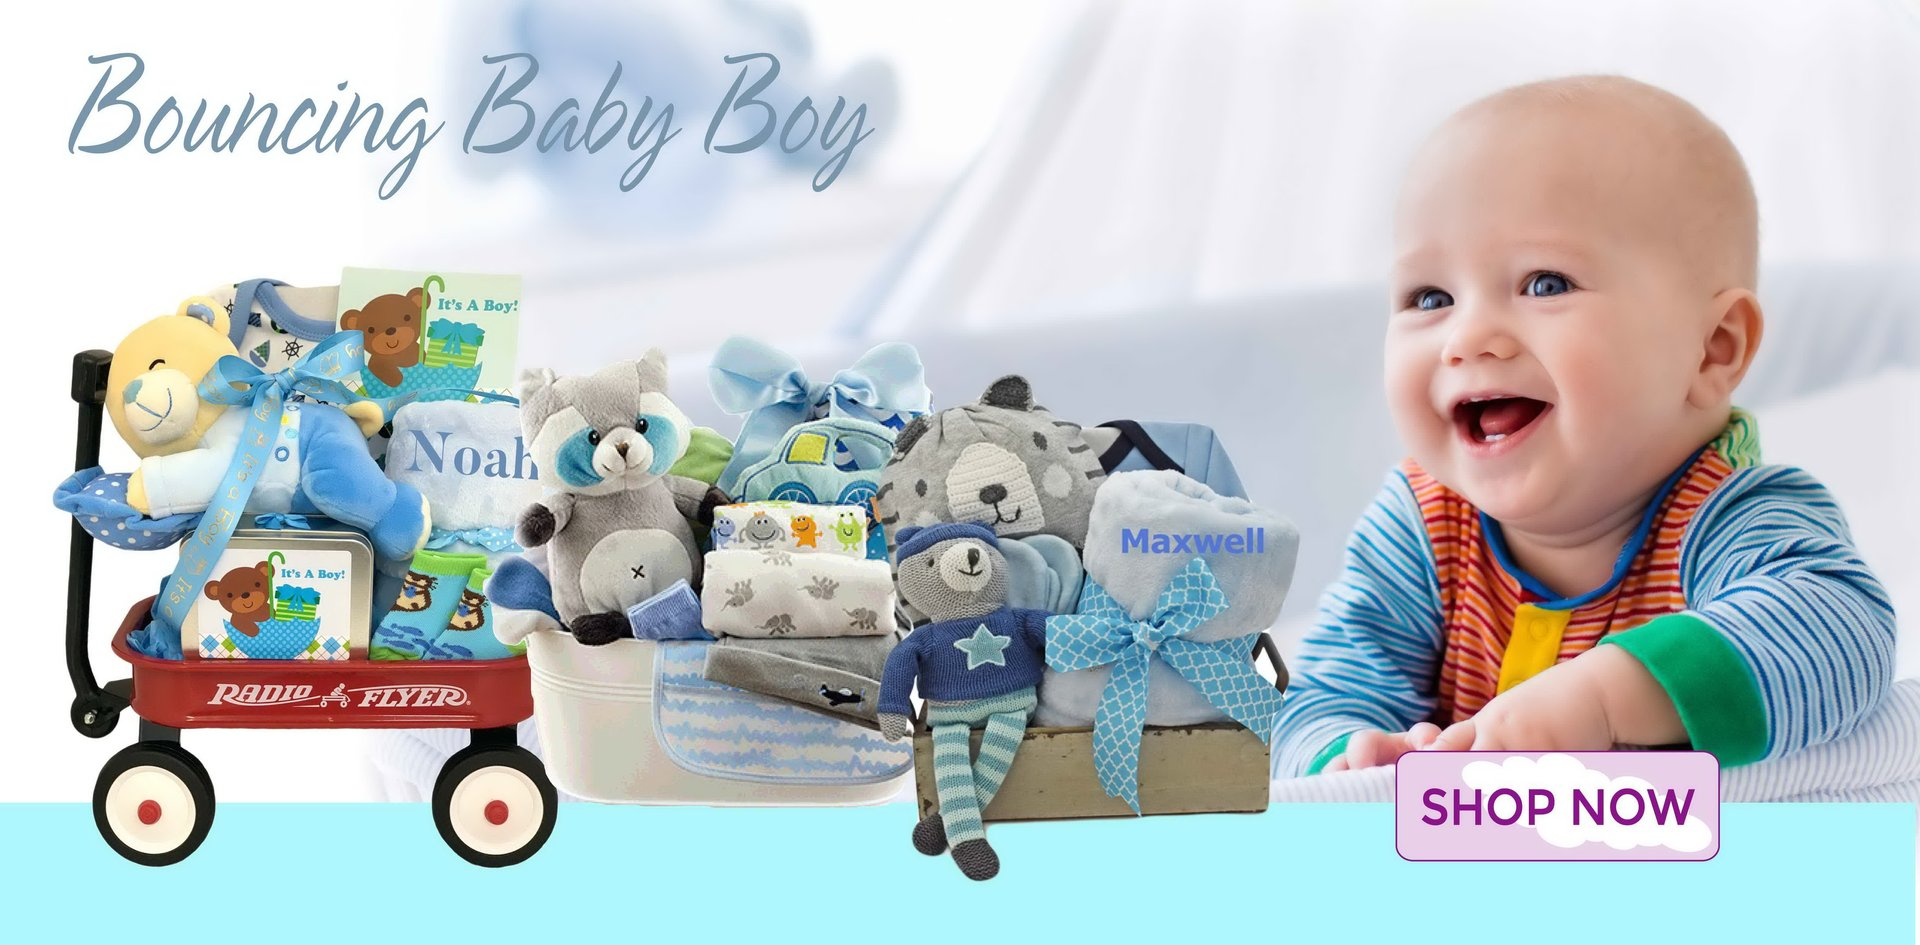 Baby gifts baby shower gifts unique personalized baby gift personalized baby baskets keepsake gifts for newborns negle Image collections